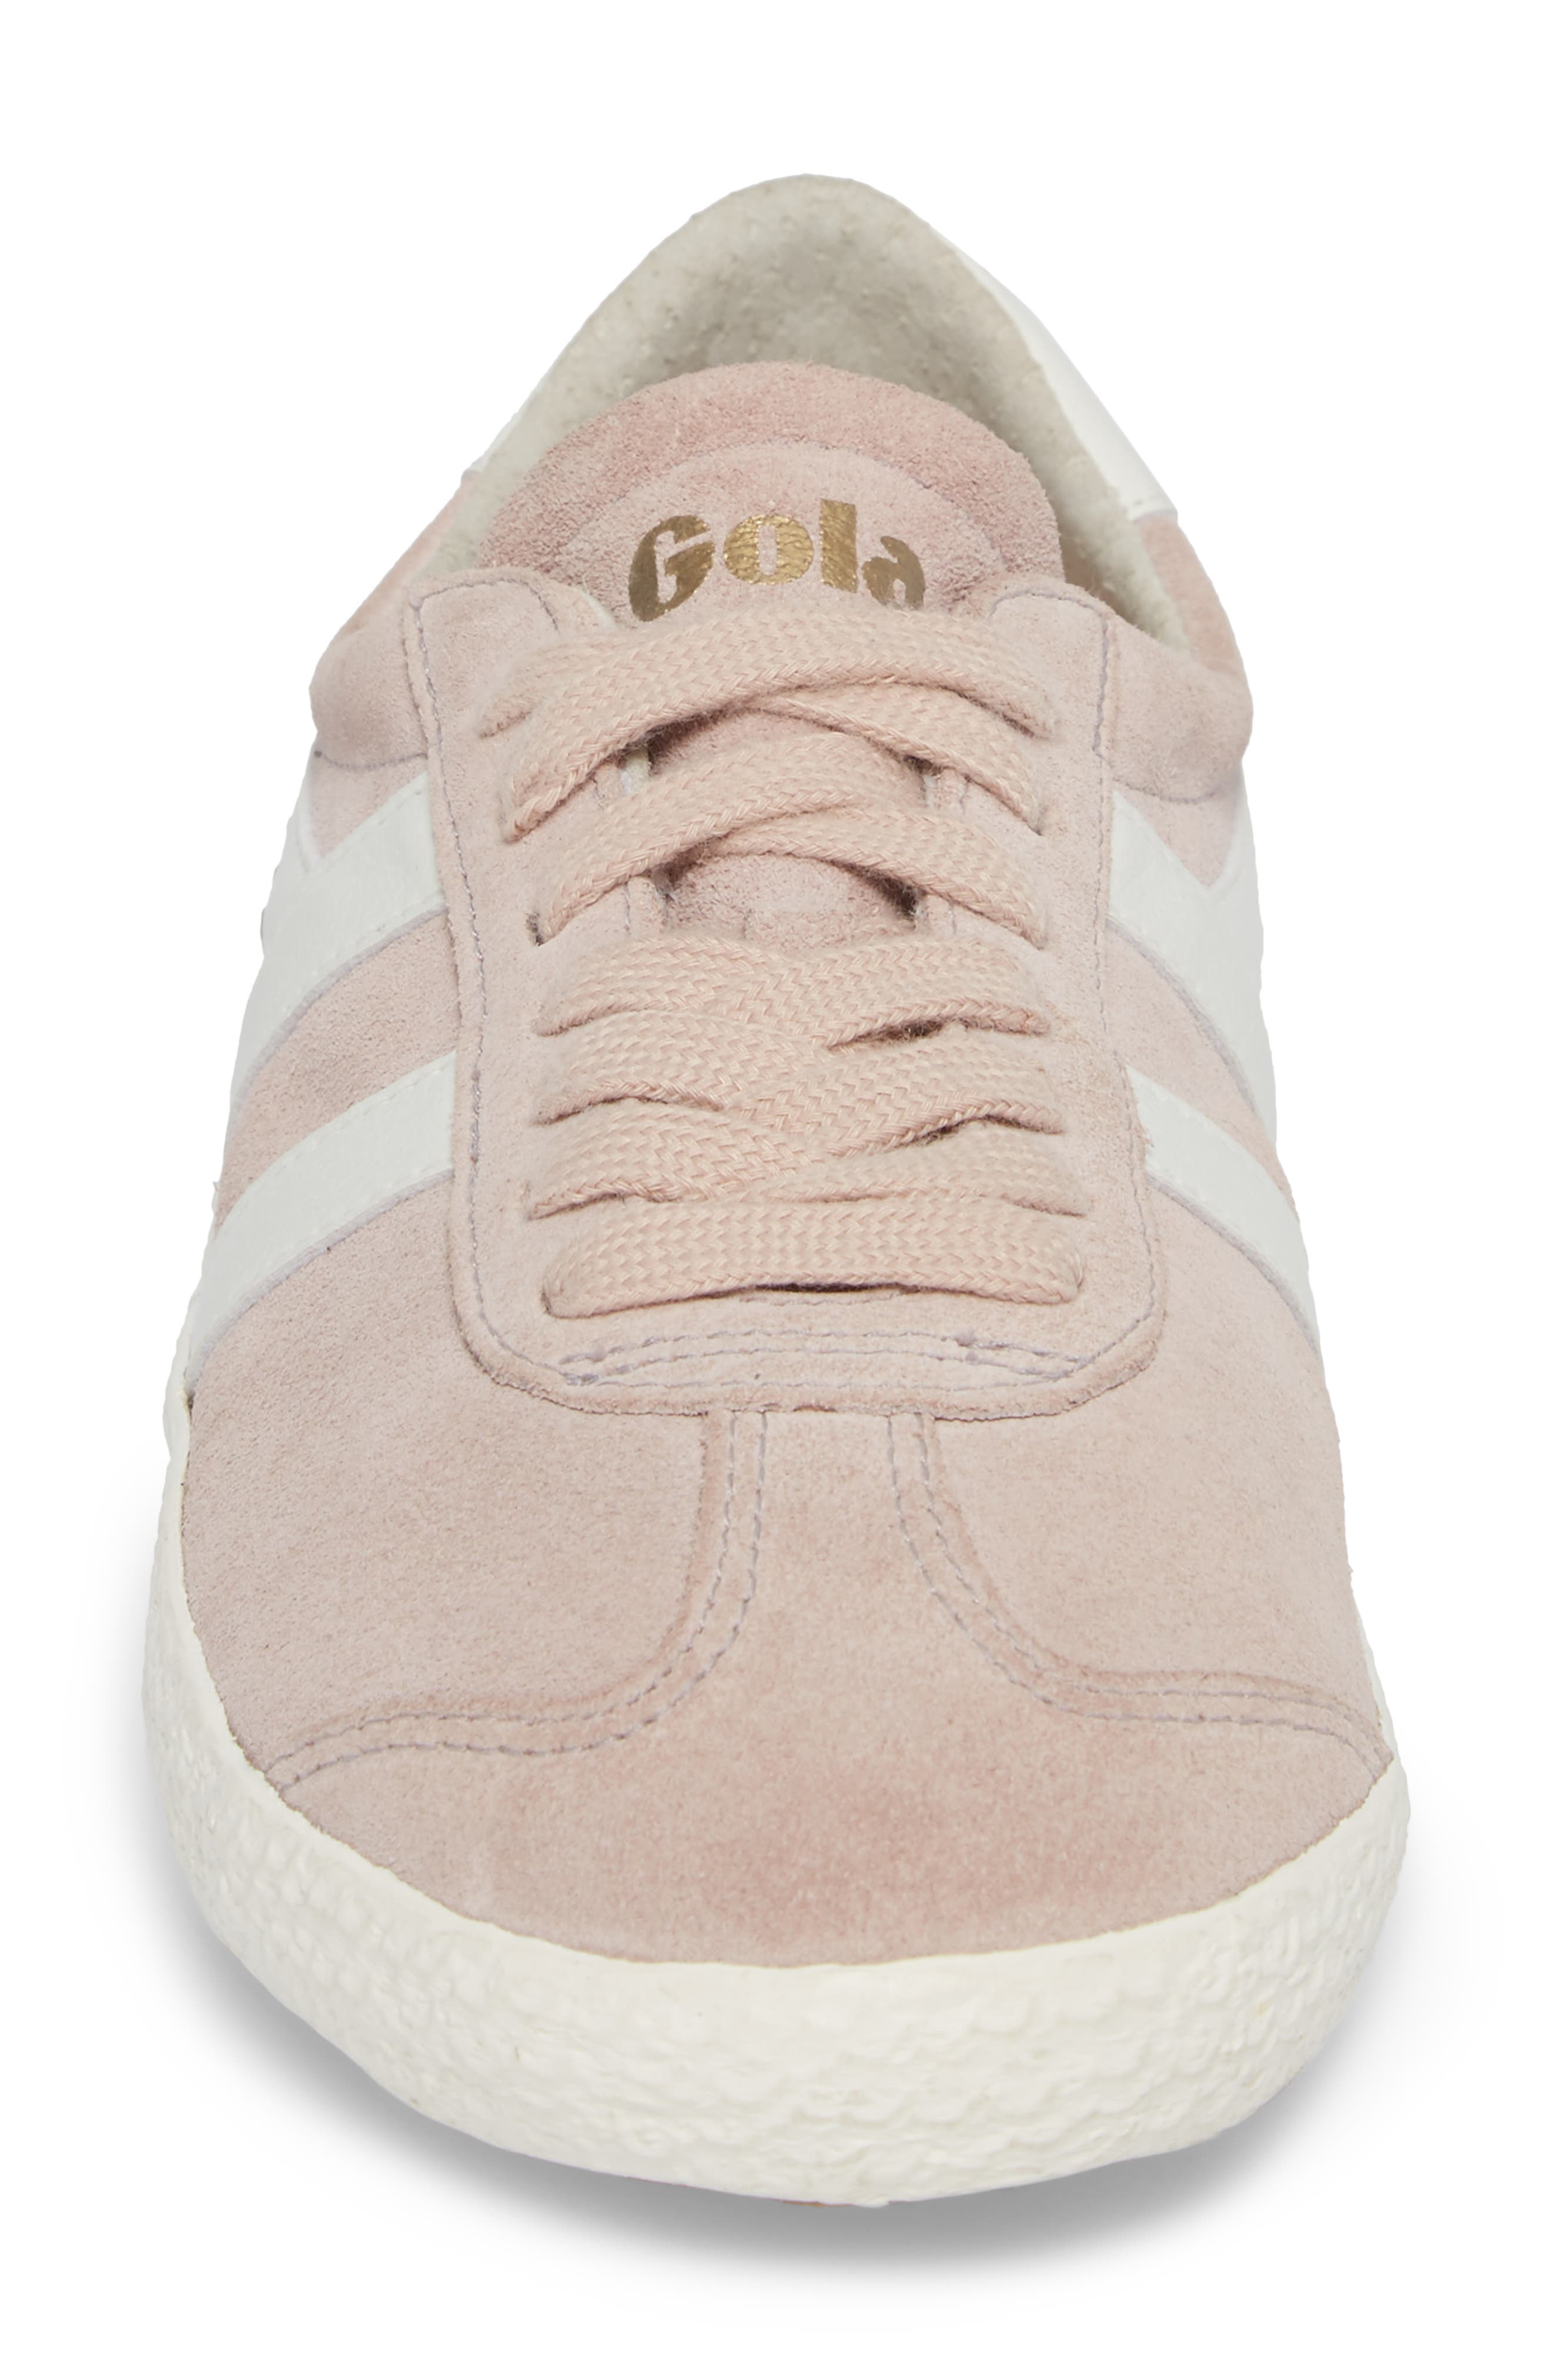 Specialist Low Top Sneaker,                             Alternate thumbnail 4, color,                             BLOSSOM/ OFF WHITE